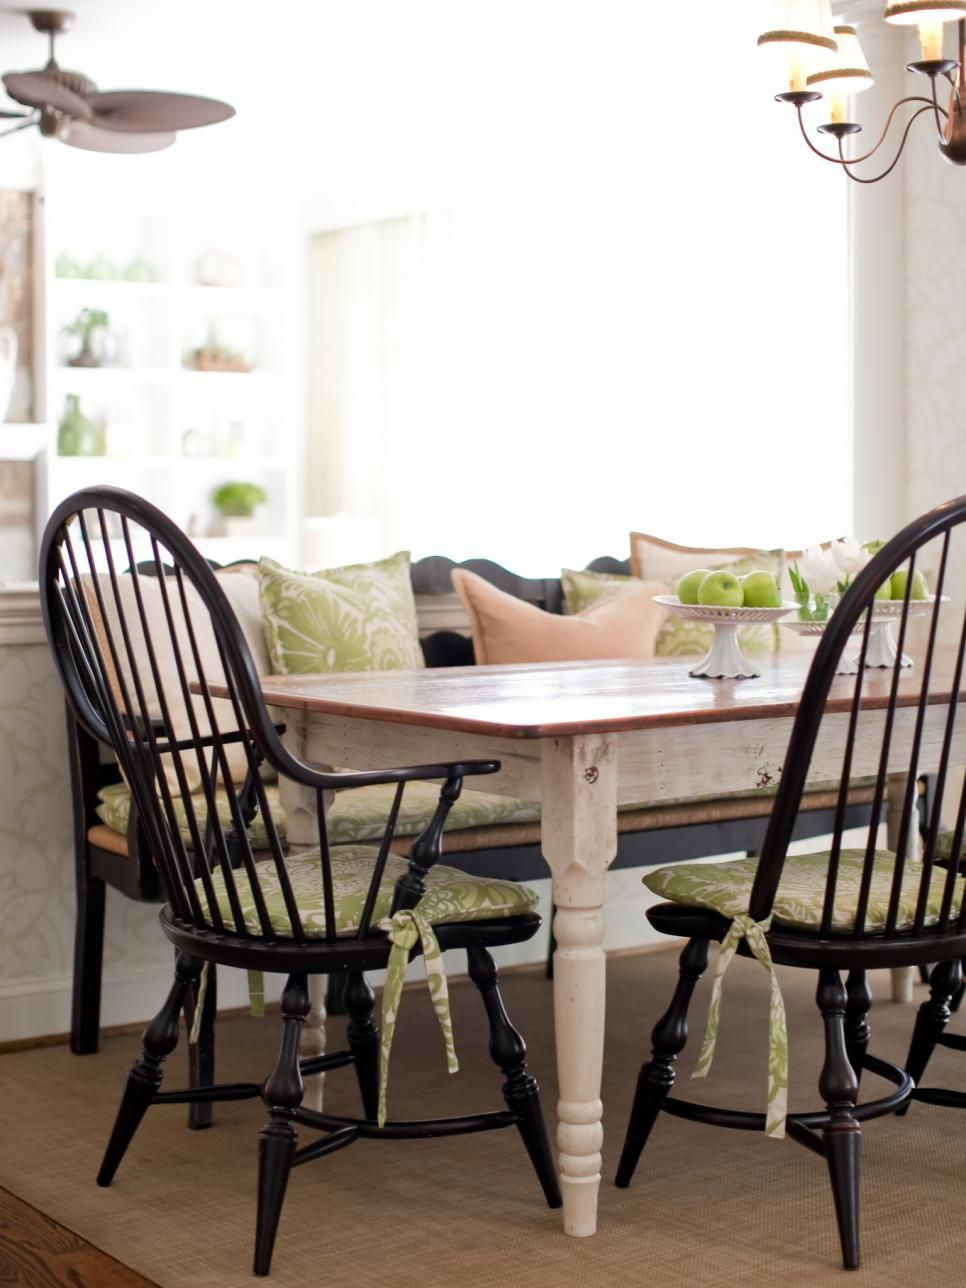 This Country Dining Setting Features A Farmhouse Table With Black Windsor  Chairs And Bench To Give Part 75